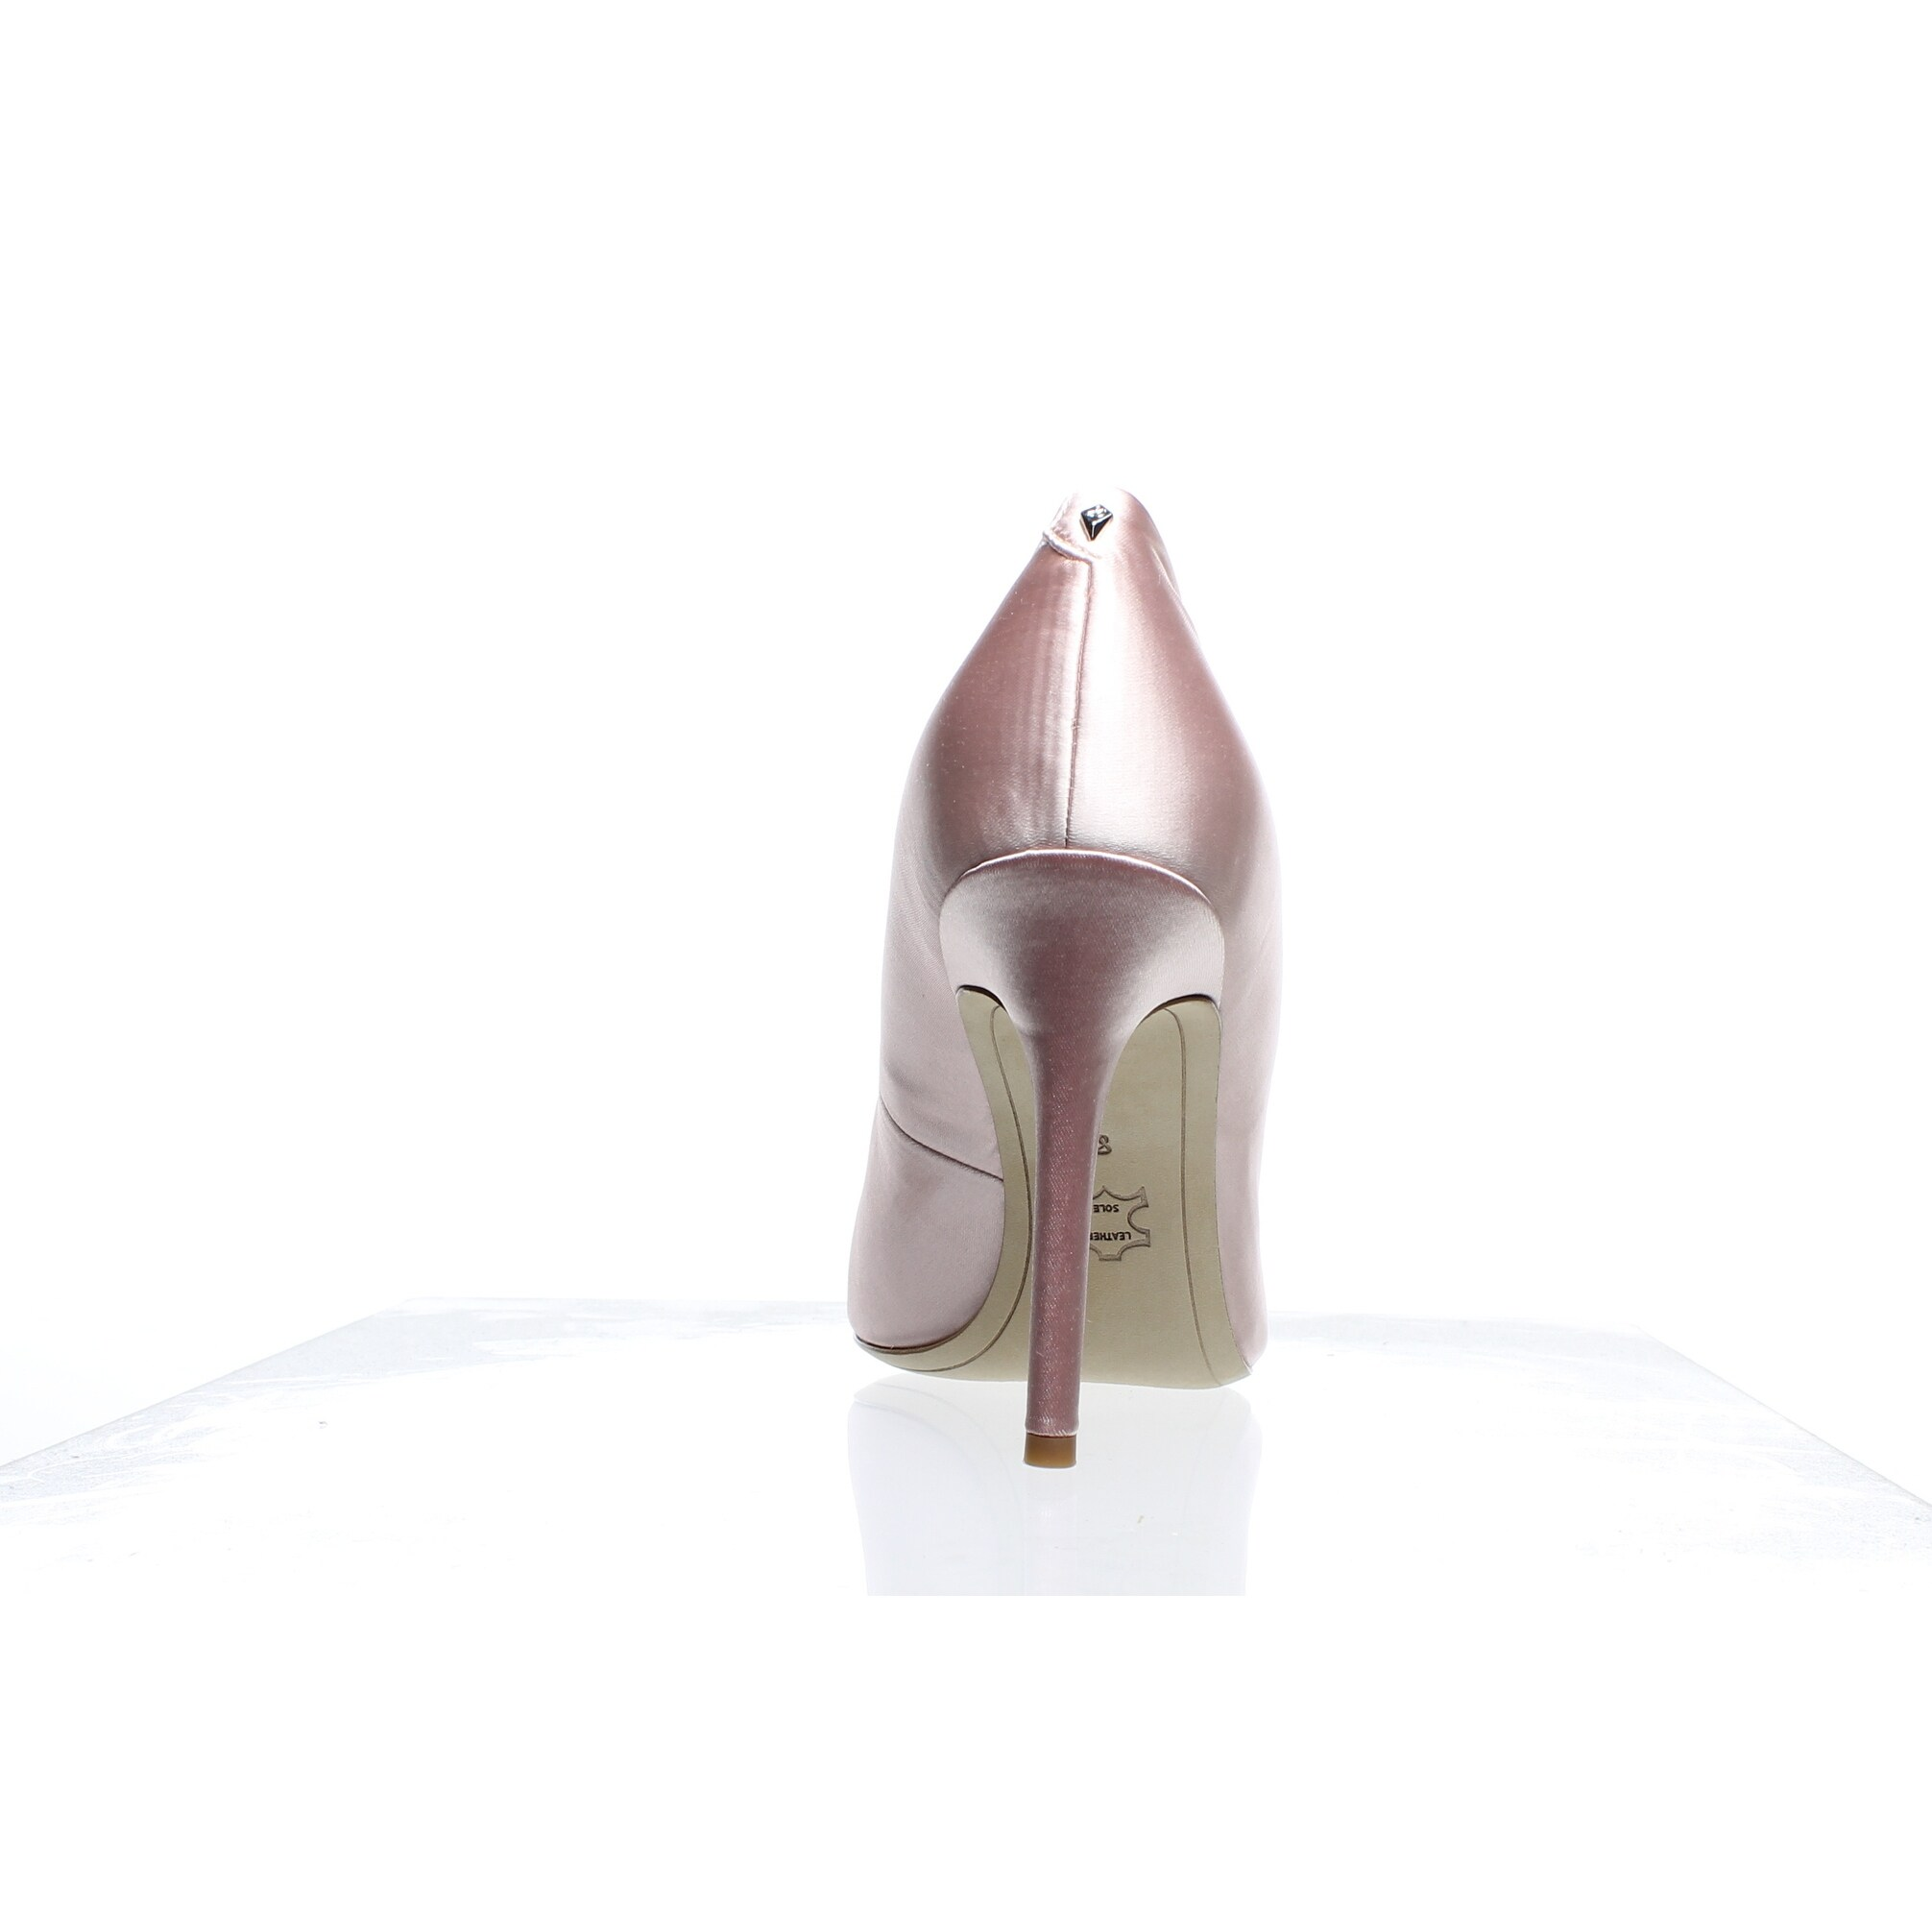 720721a4af Shop Sam Edelman Womens Hazel Pink Nude Satin Pumps Size 8 - On Sale - Free  Shipping Today - Overstock - 27992962